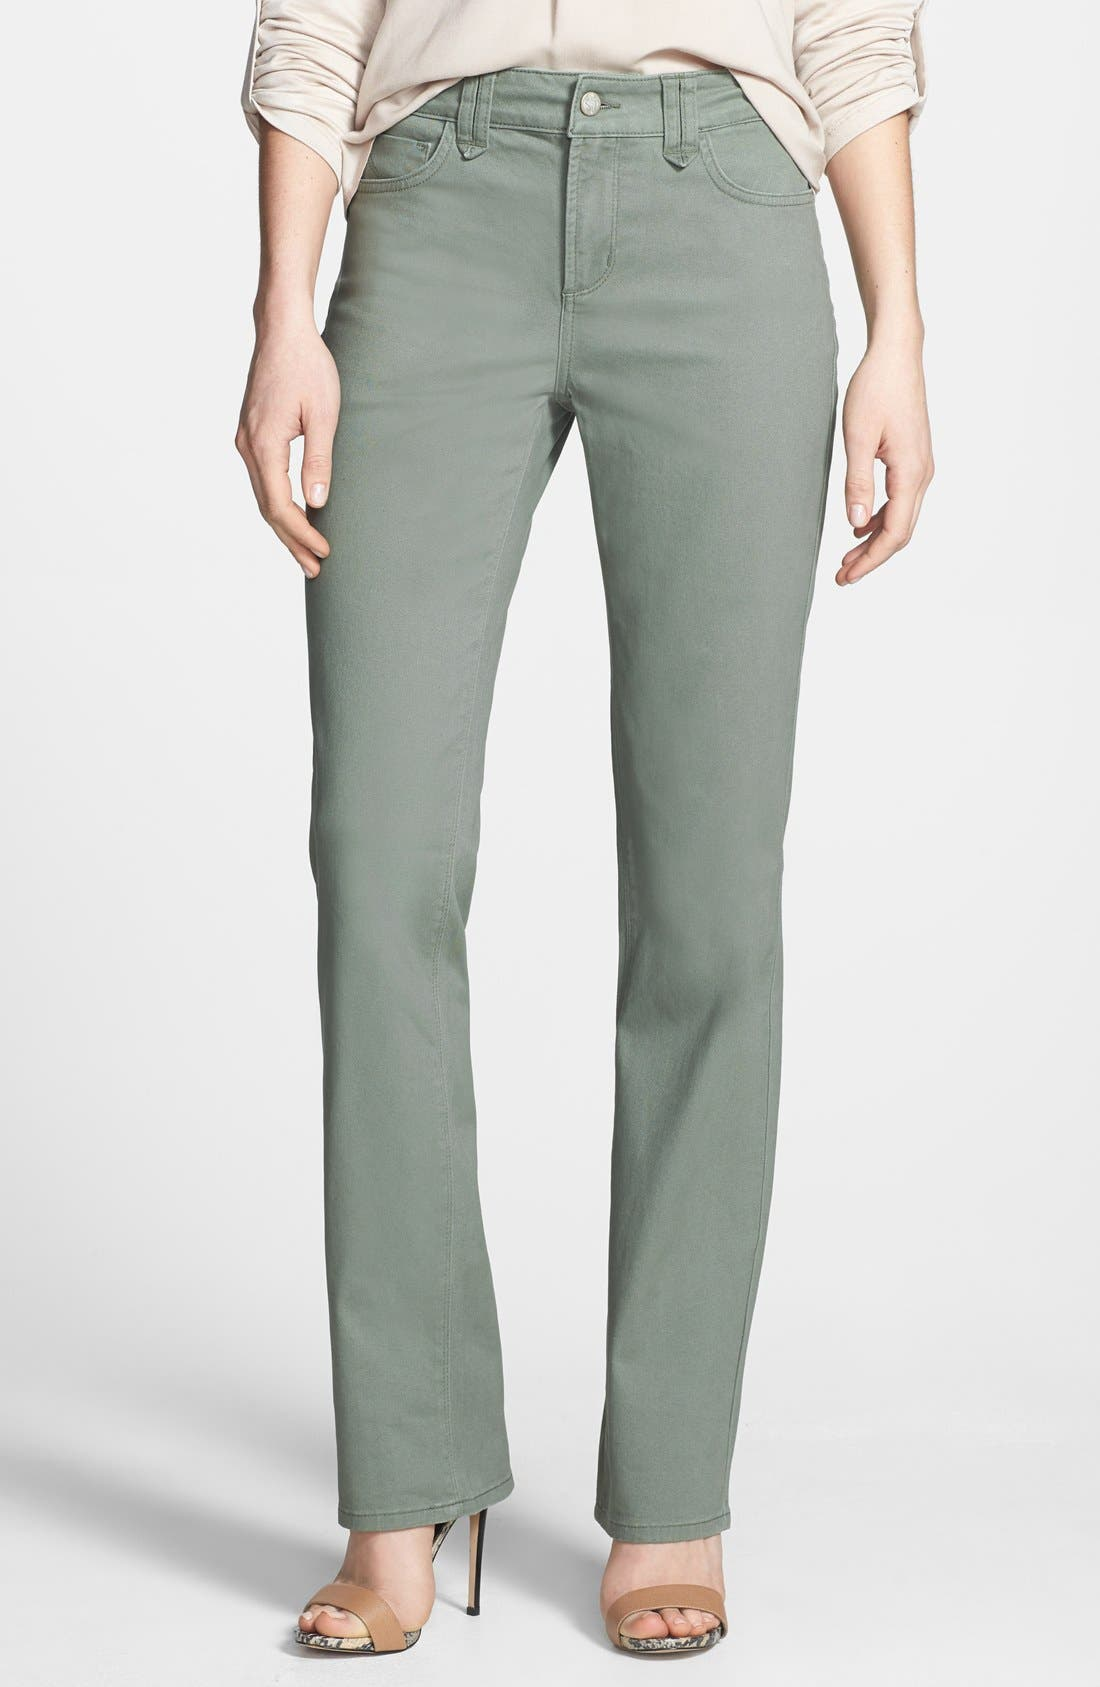 Alternate Image 1 Selected - NYDJ 'Hayden' Stretch Twill Straight Leg Jeans (Regular & Petite)